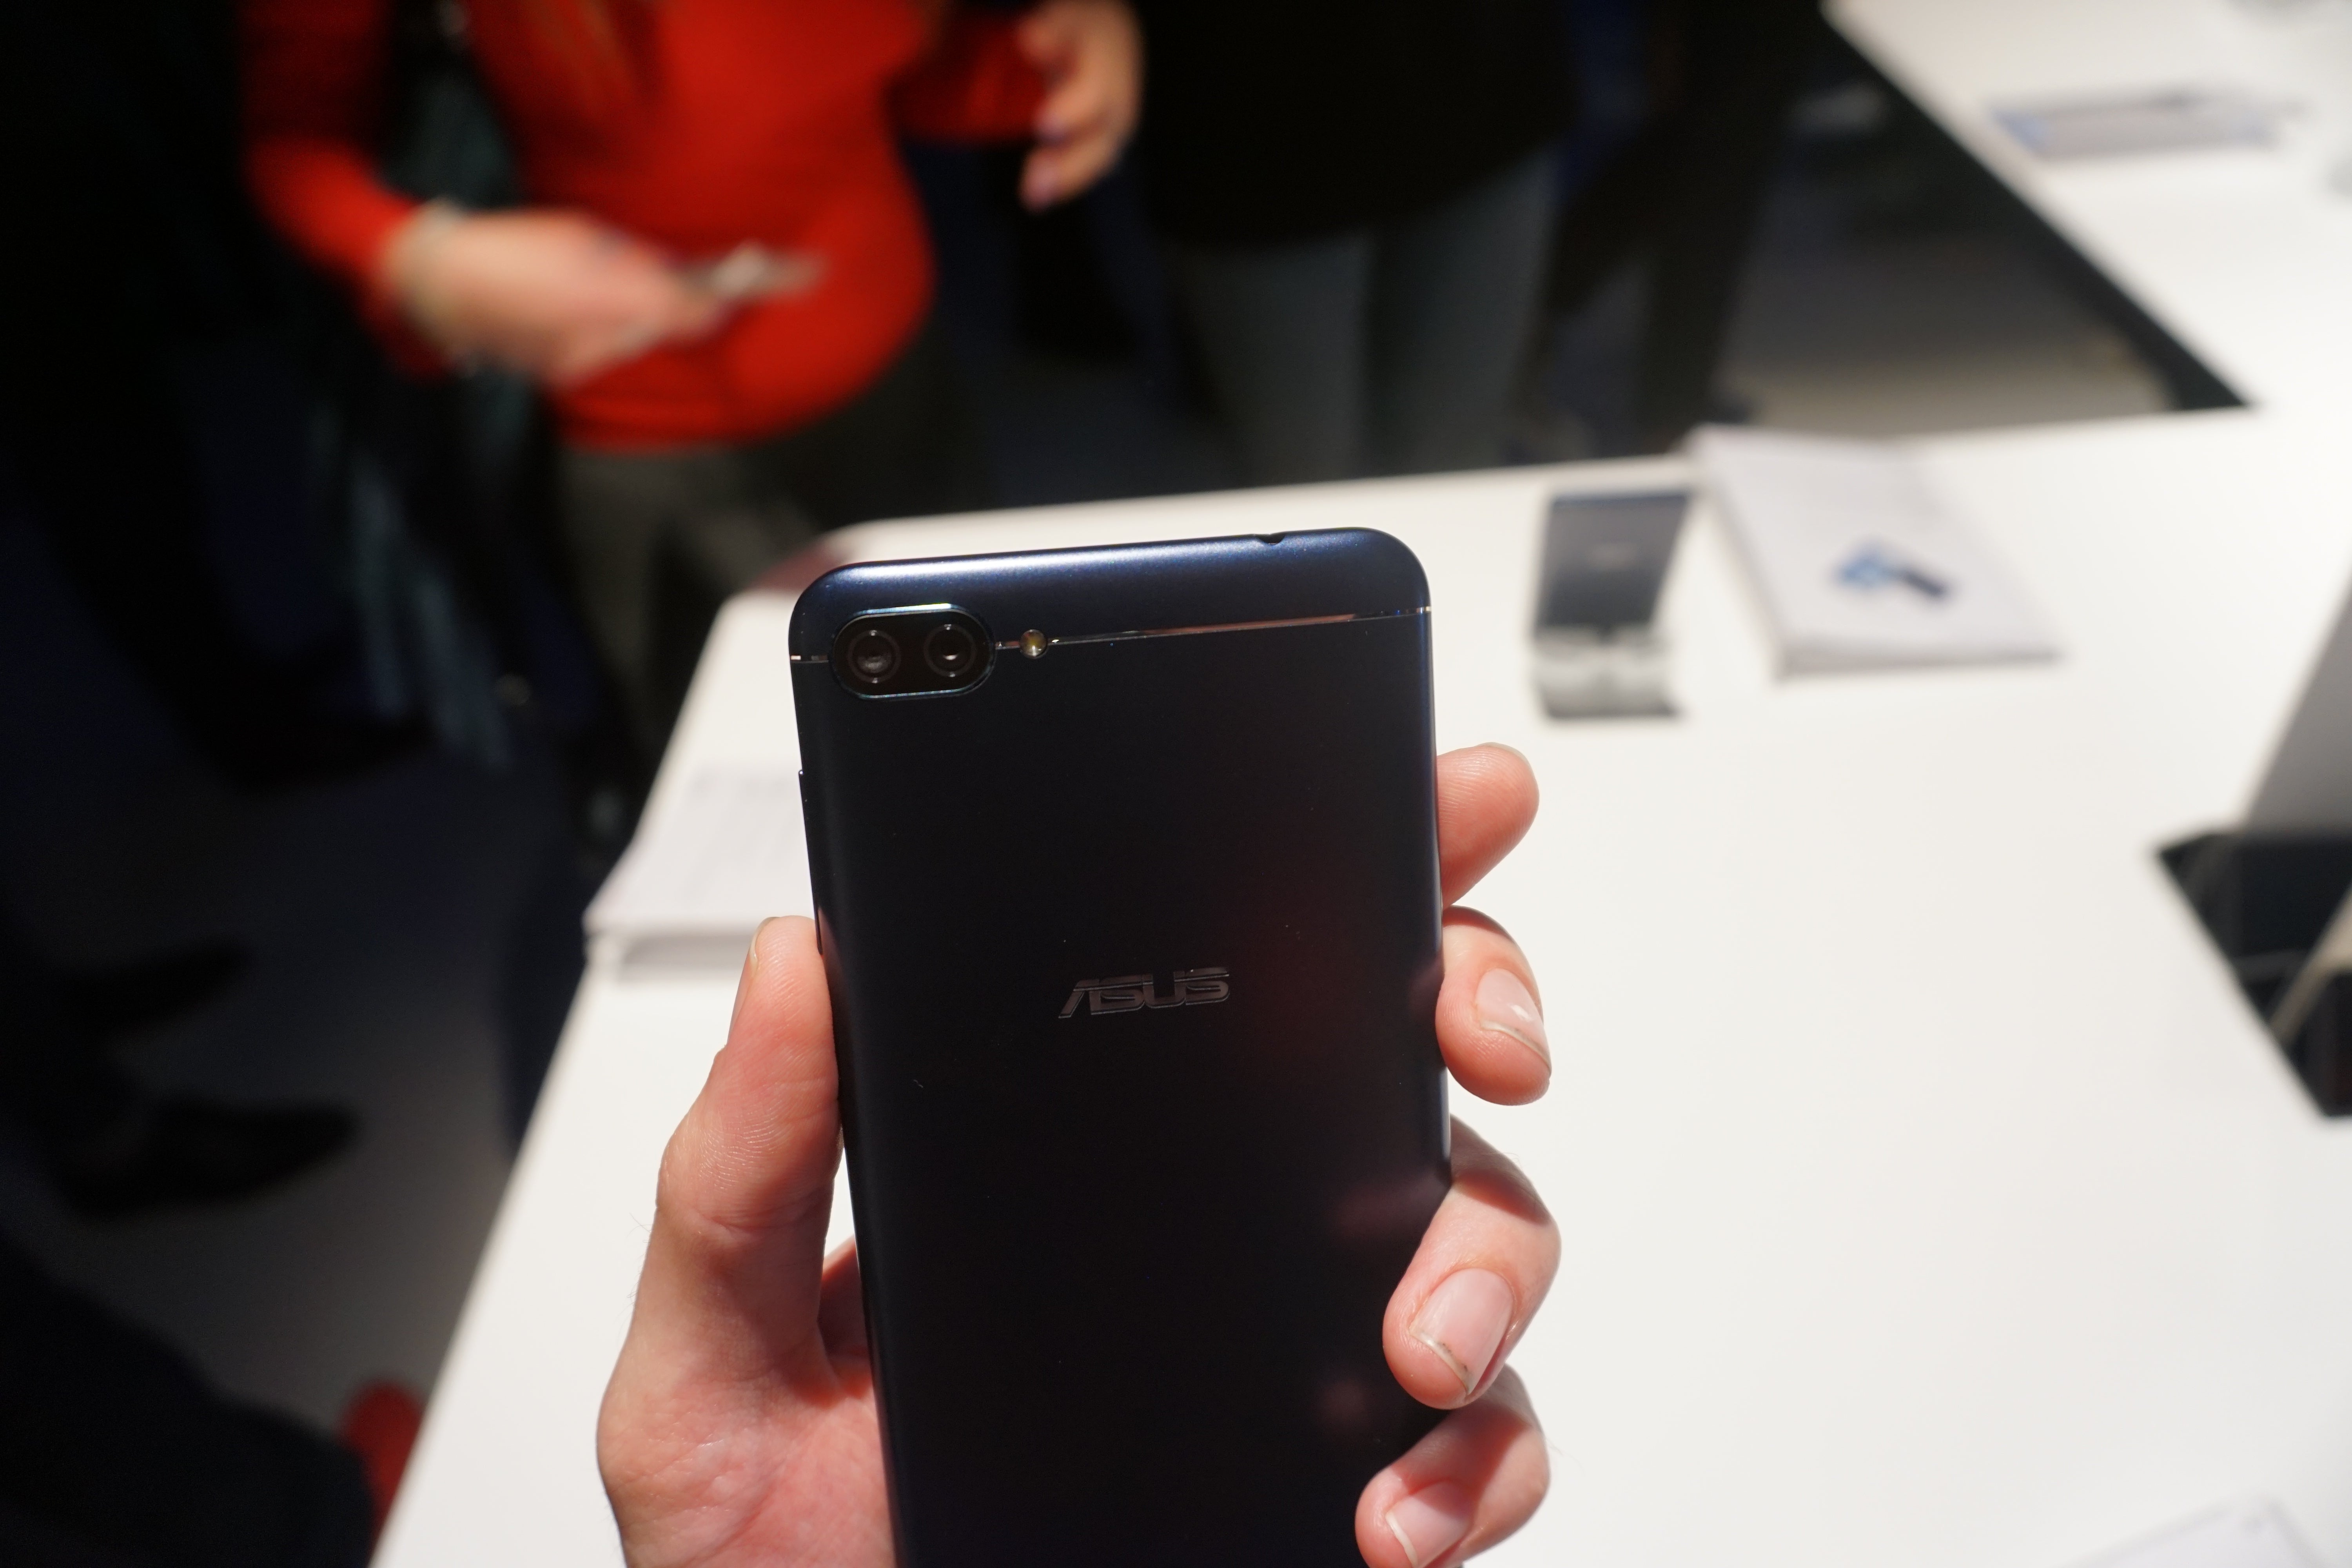 asus zenfone 4 max hands on review trusted reviews. Black Bedroom Furniture Sets. Home Design Ideas